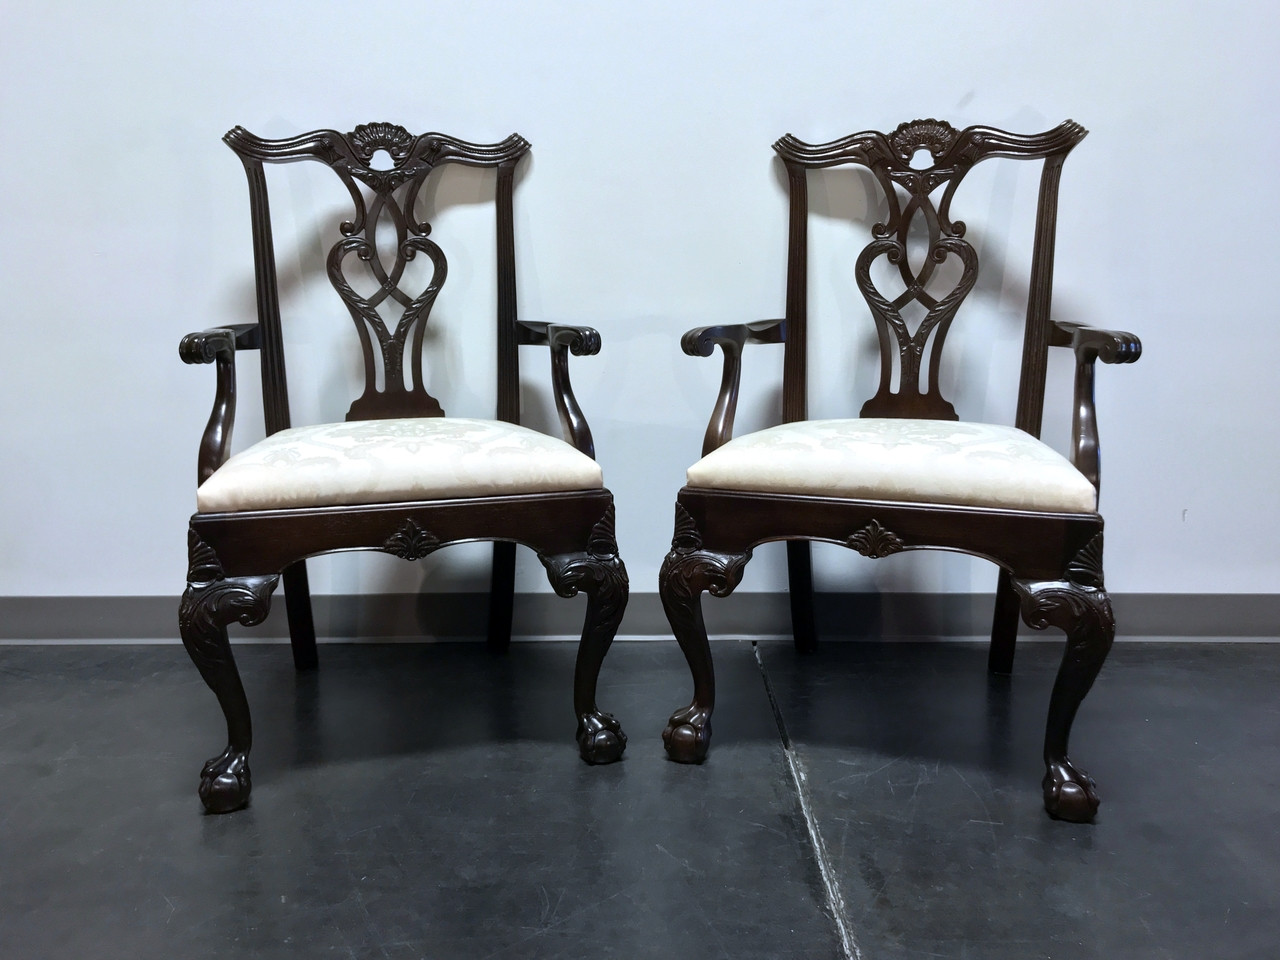 Henredon Chair Sold Out Henredon Rittenhouse Square Mahogany Chippendale Ball In Claw Dining Arm Chairs Pair